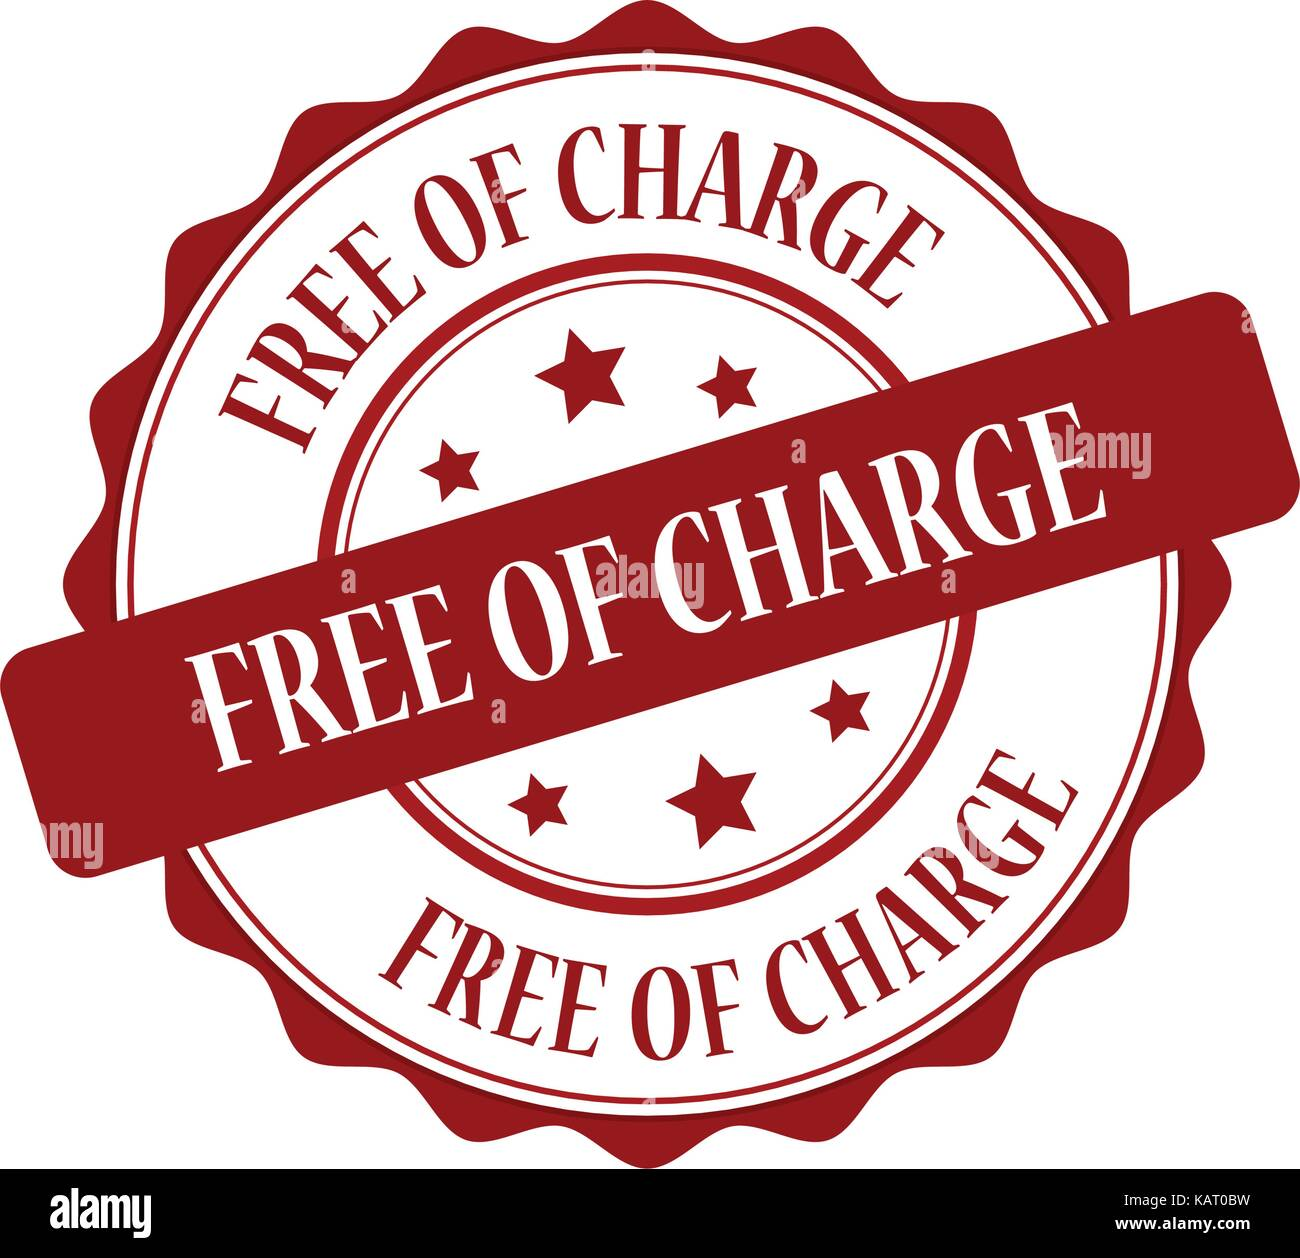 Free of charge red stamp illustration - Stock Vector